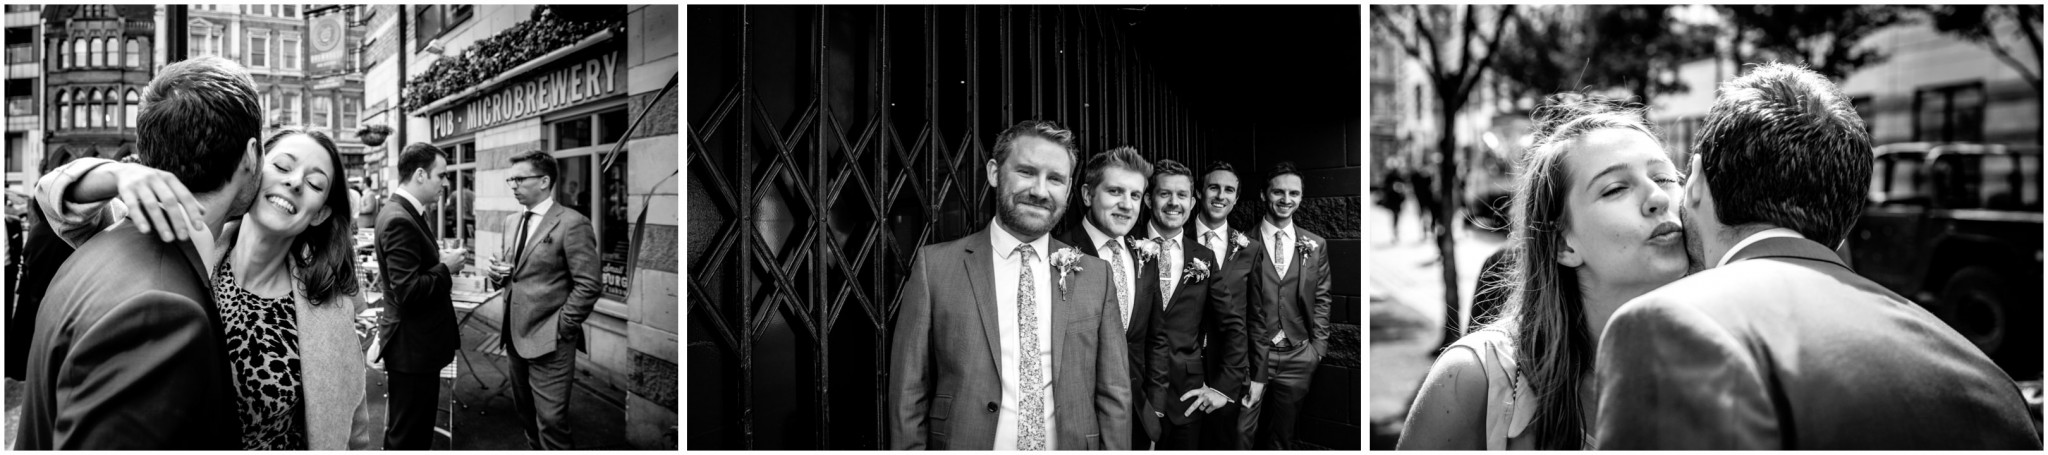 Islington Metal Works Wedding - Groom & Guests